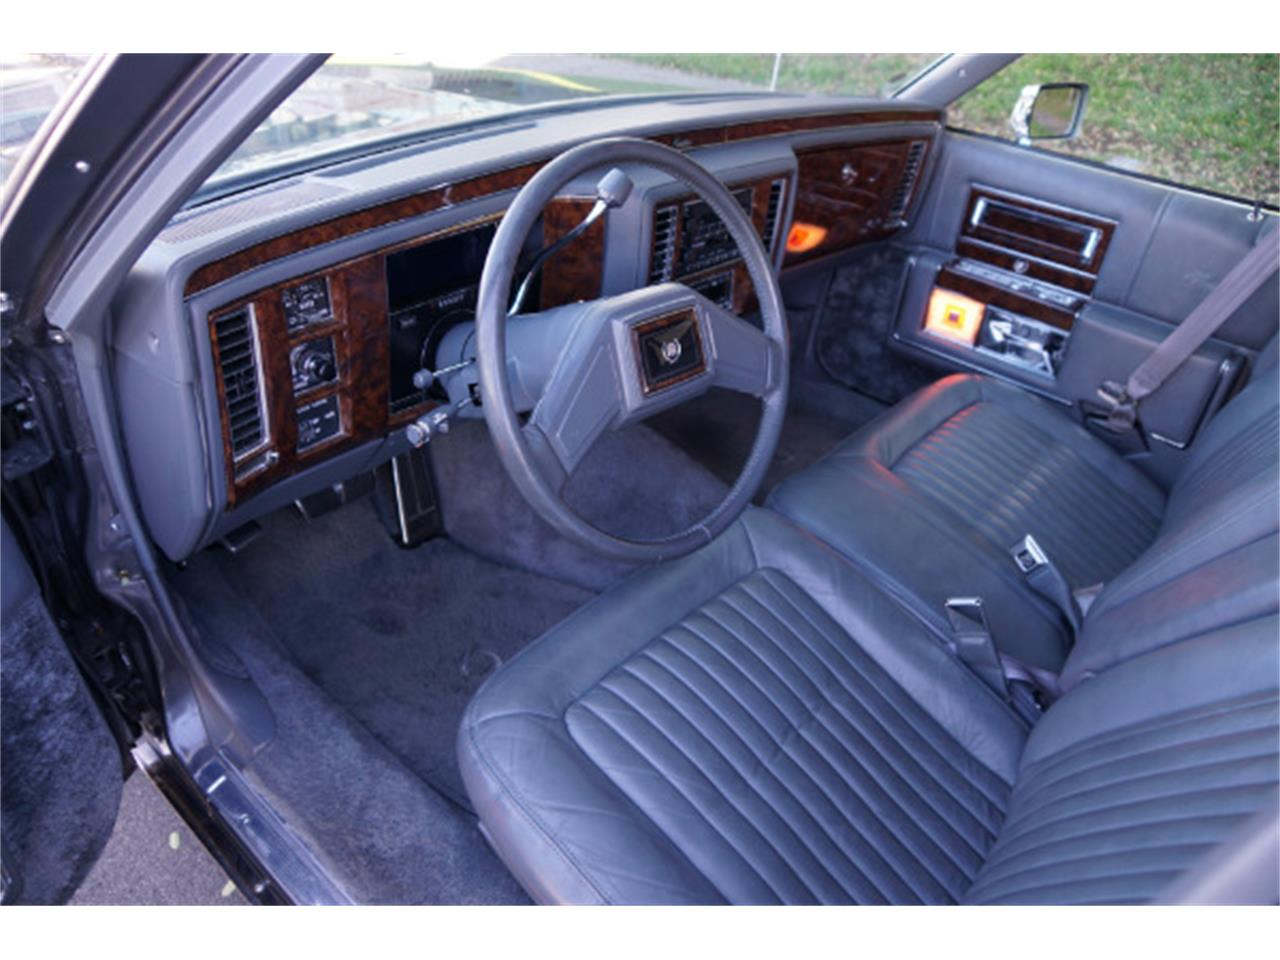 1992 Cadillac Brougham (CC-1335217) for sale in Torrance, California